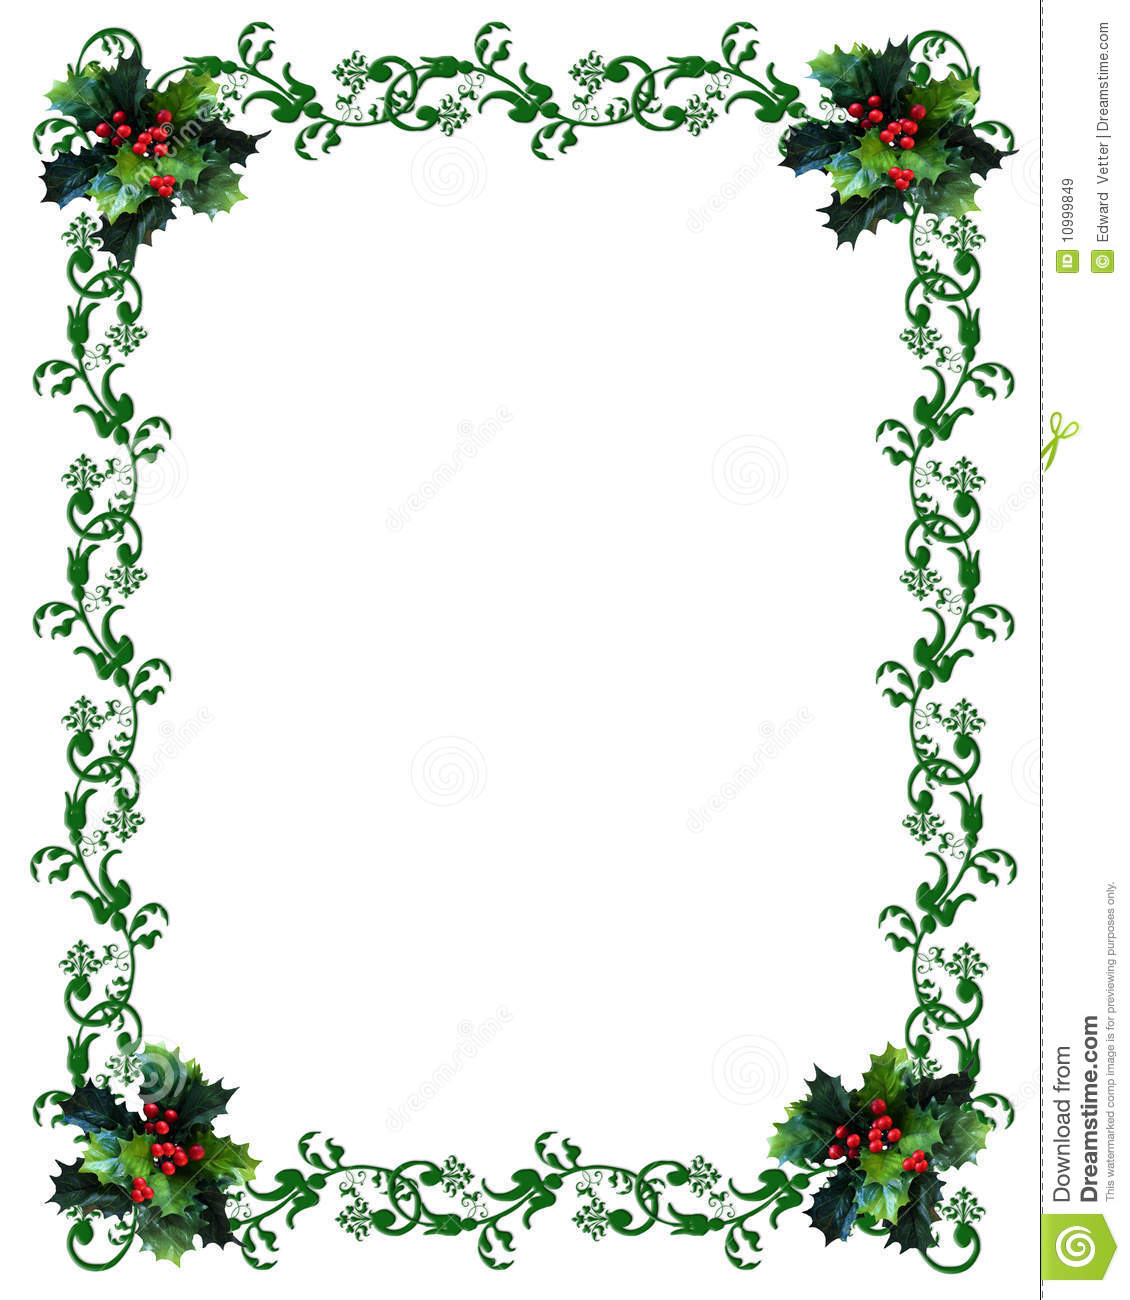 ... Holly On White Background Royalty Free Stock Images - Image: 10999849